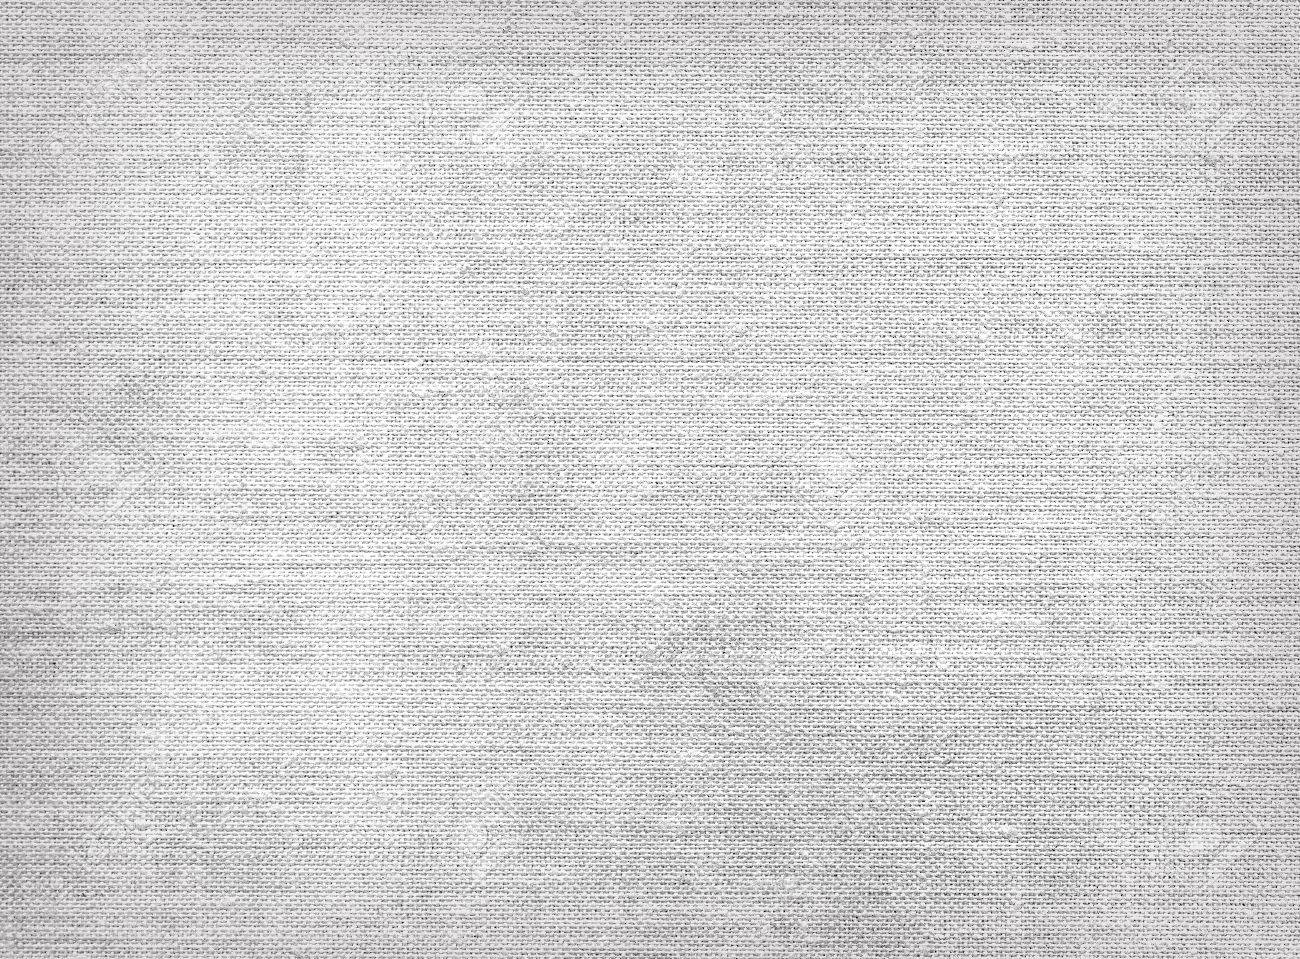 Raw Grey Linen Burlap Fabric Sack Canvas Texture Stock Photo